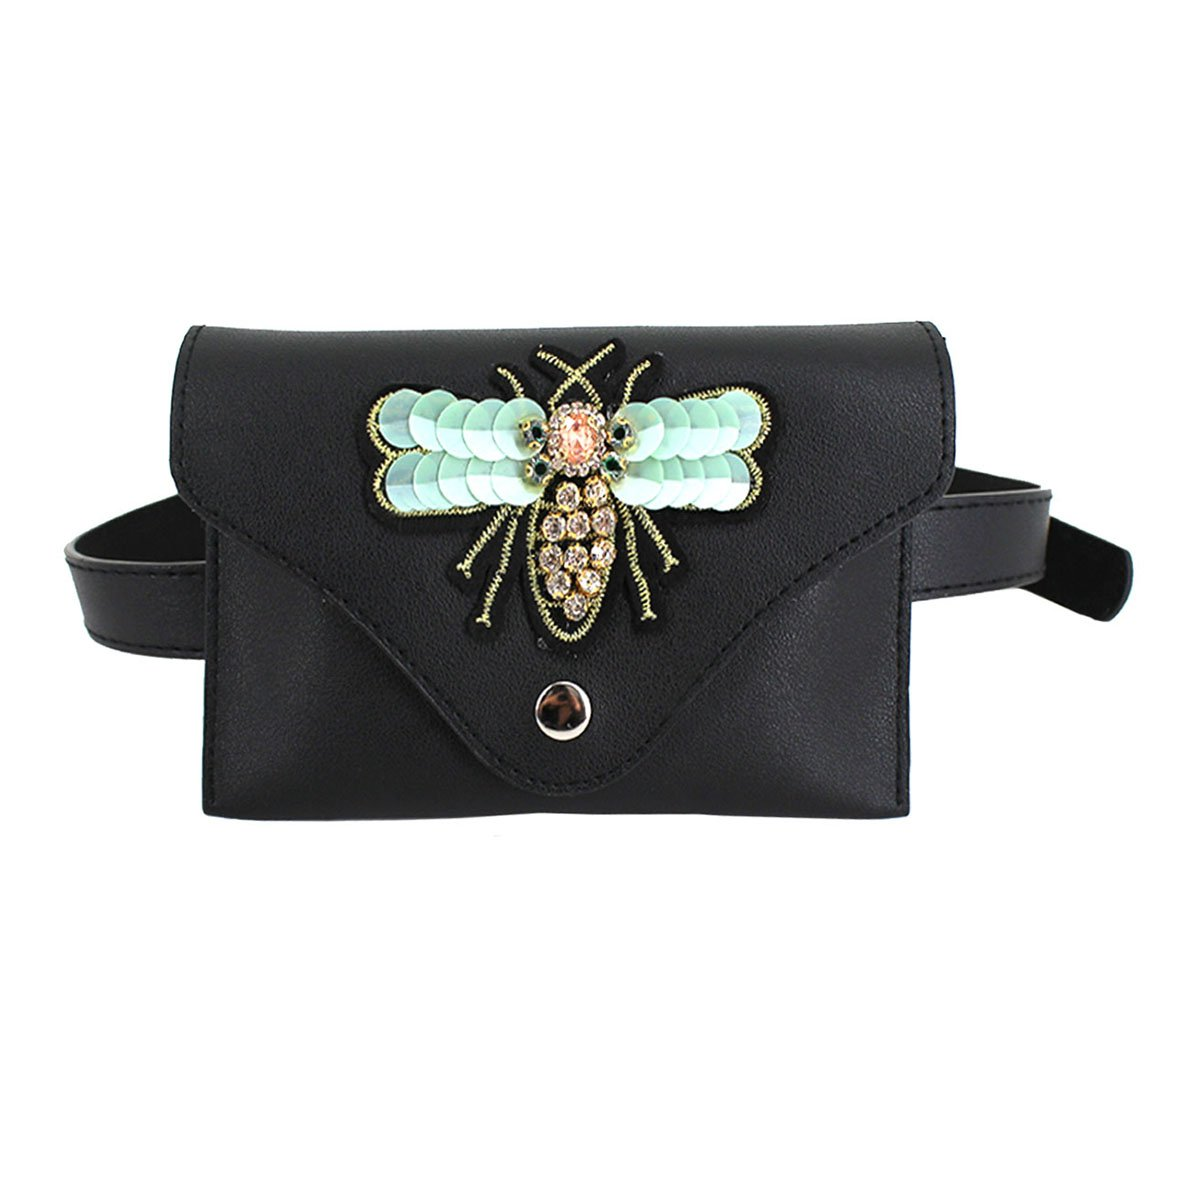 Queena Women Girls Elegant Leather Waist Bag 3D Bee Embroidery Fanny Pack Phone Purse Green